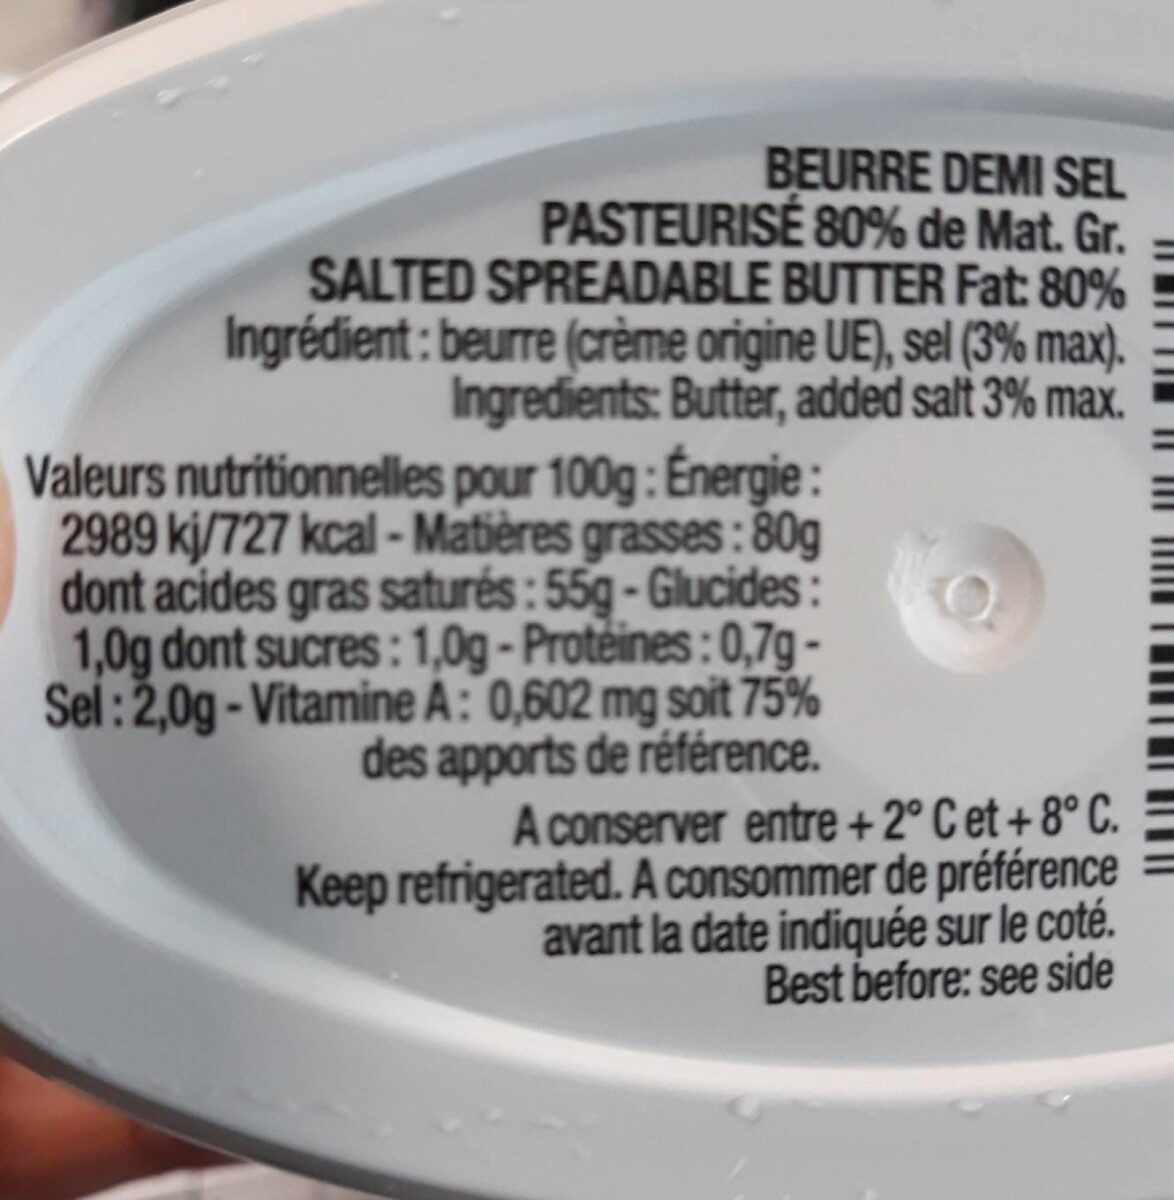 Beurre Tendre Demi Sel - Nutrition facts - fr